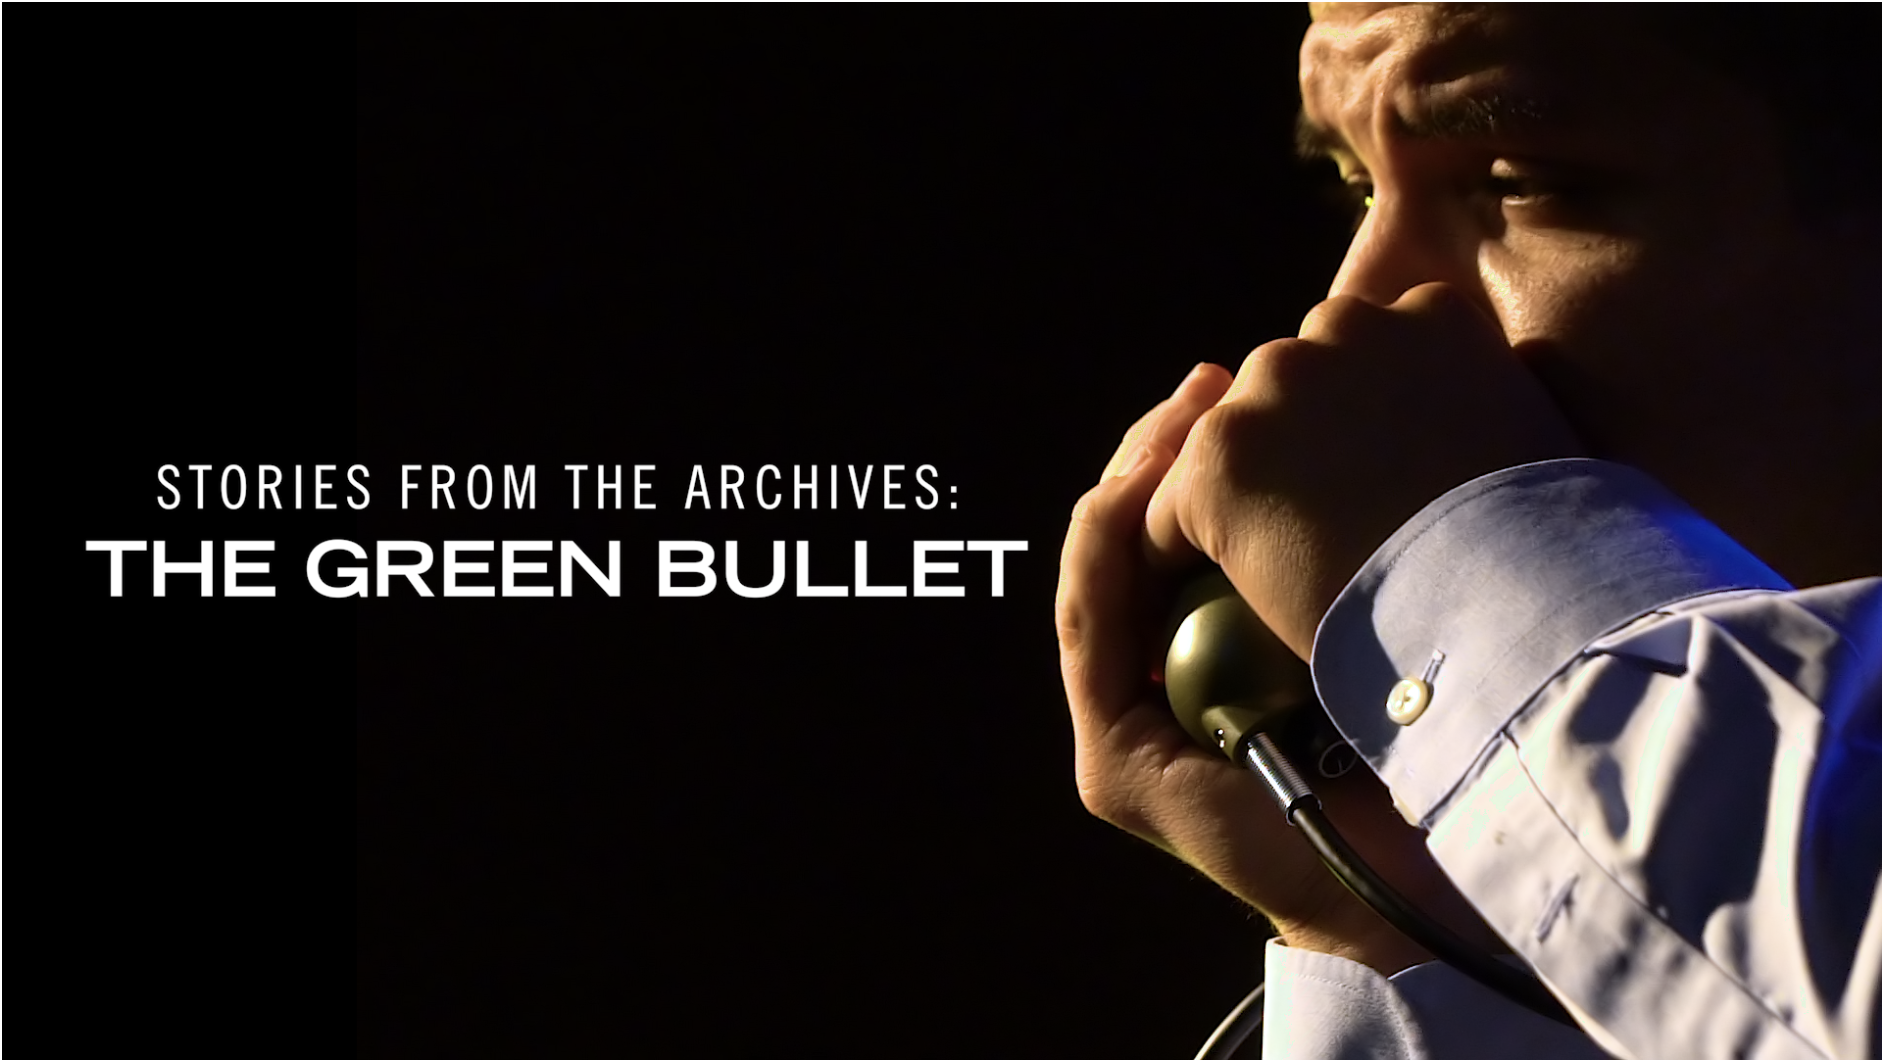 Stories from the Shure Archives: The Green Bullet (2016) | Producer, Editor, DP